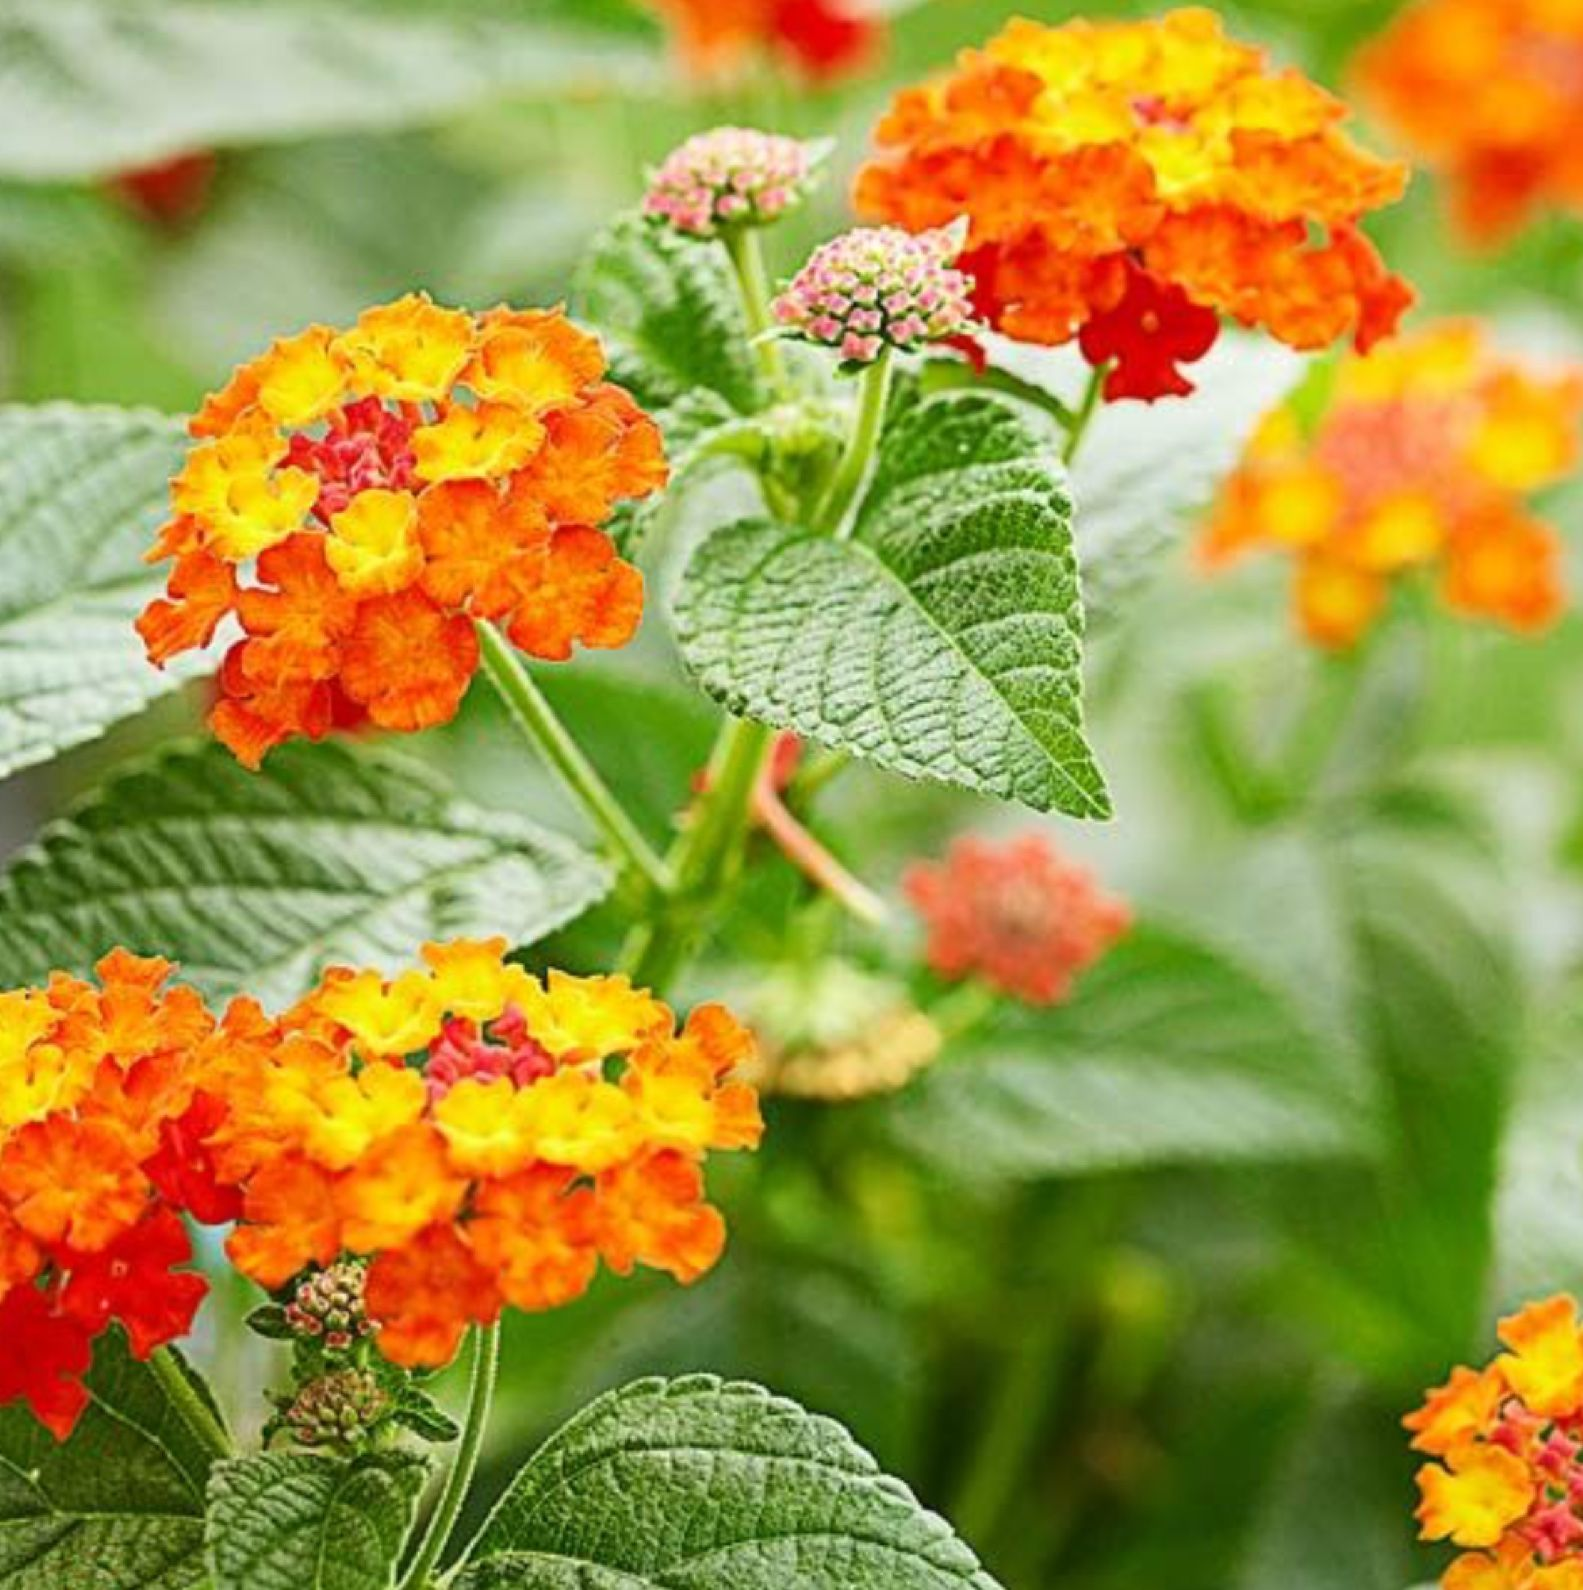 Lantana A Butterfly Plant Grows Wild In Florida Plants Beautiful Flowers Seaside Garden